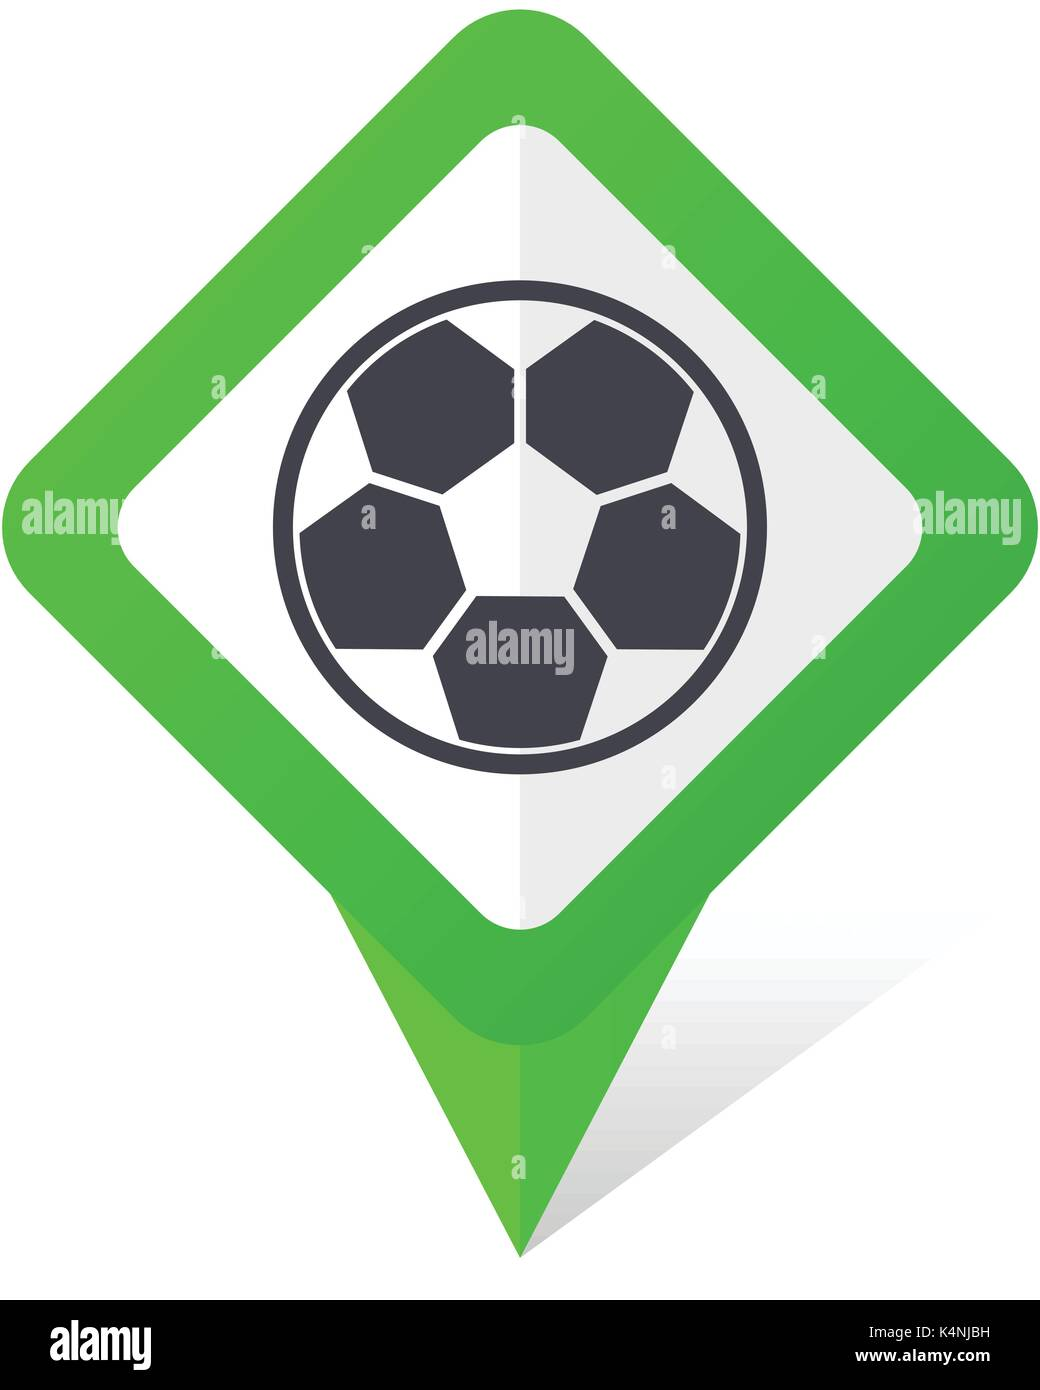 Soccer green square pointer vector icon in eps 10 on white background with shadow. - Stock Vector